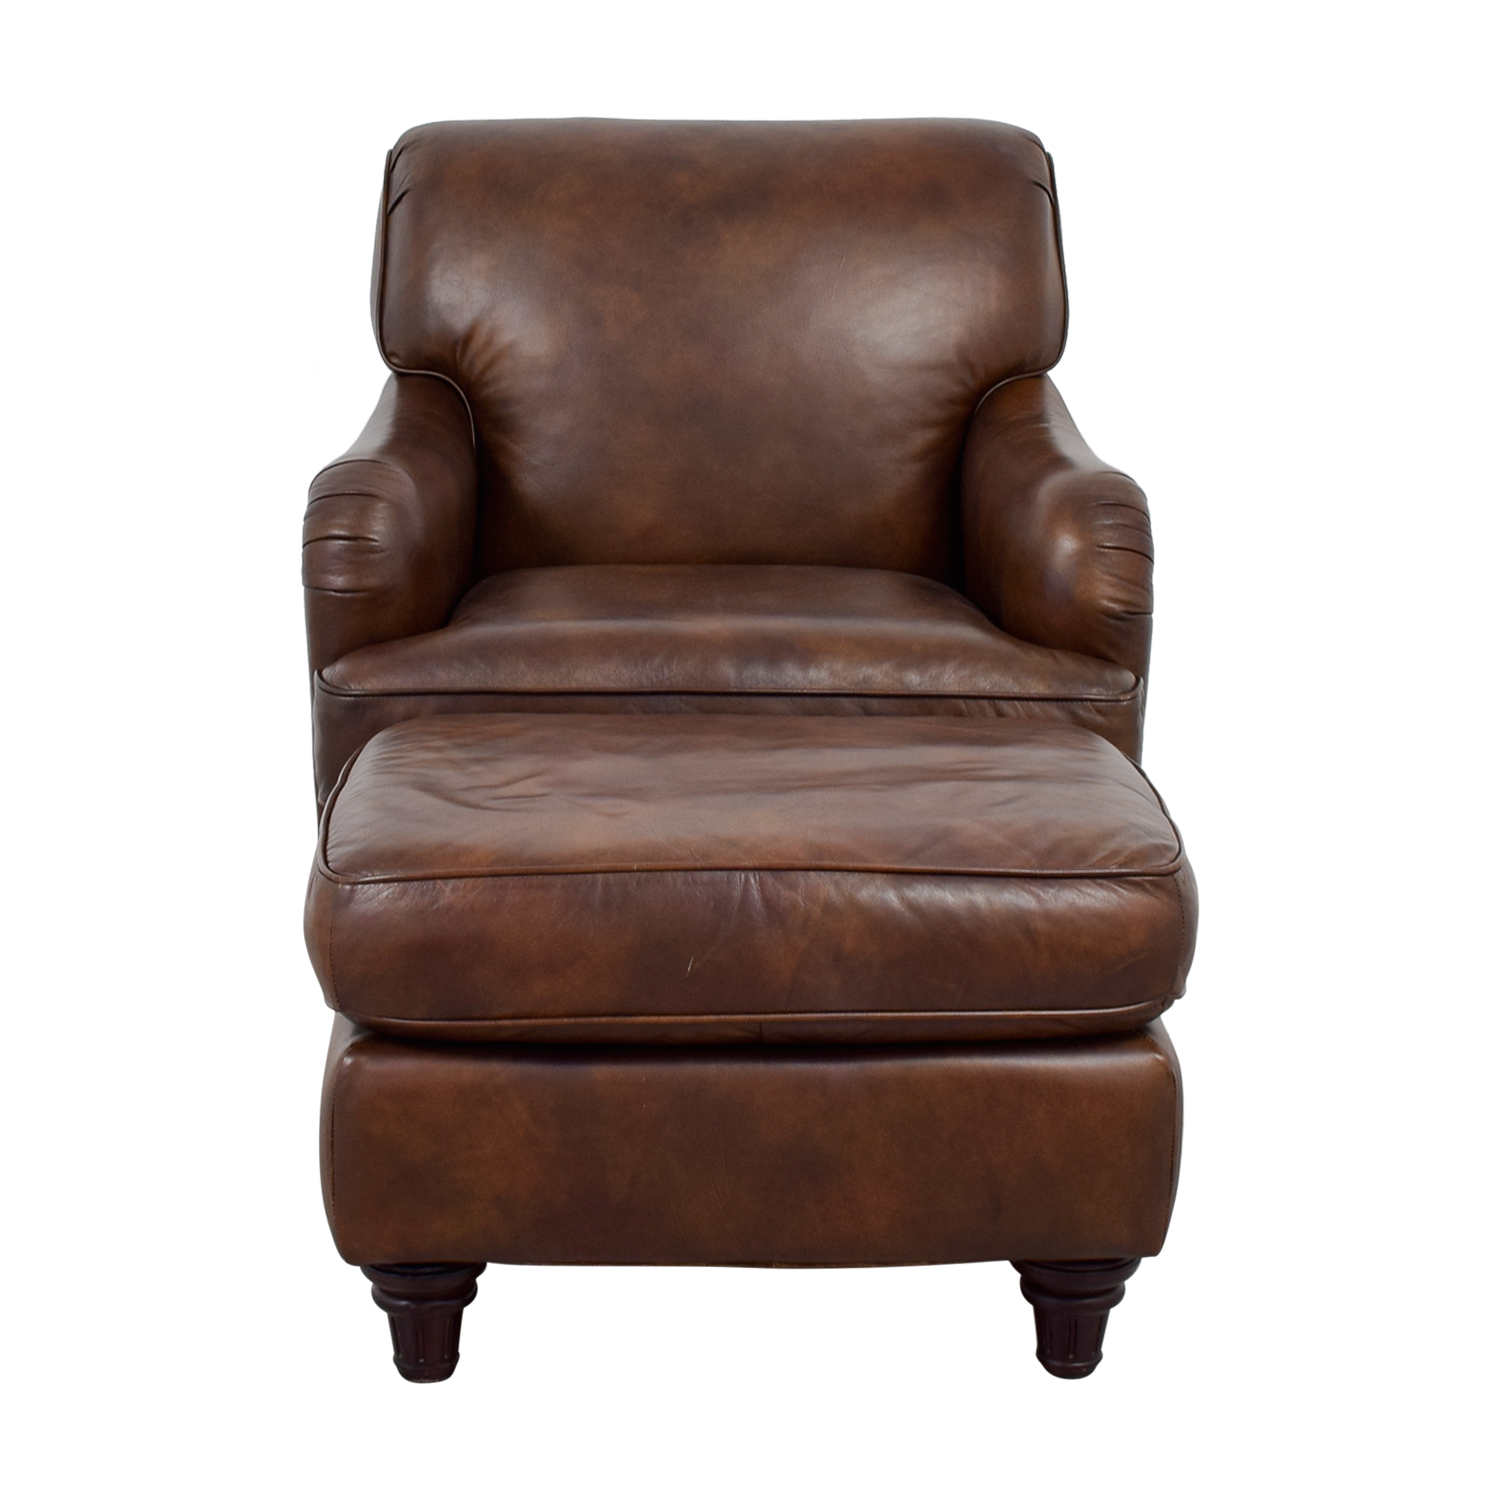 Lane Leather Lane Leather Chair and Ottoman used